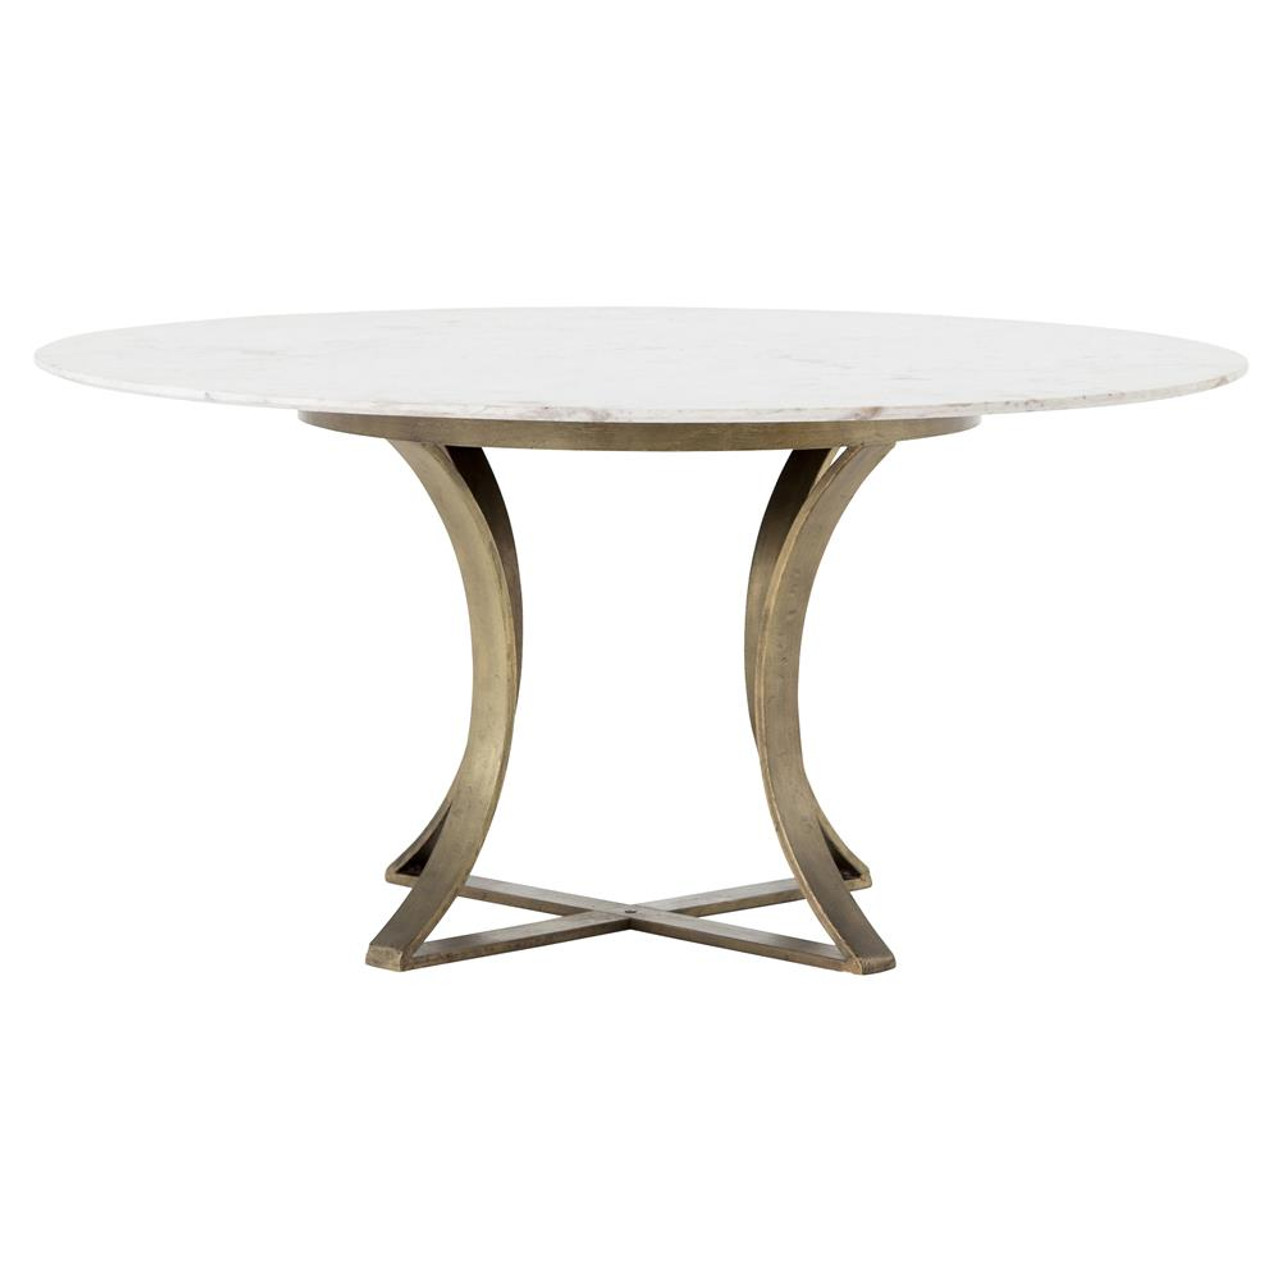 Gage White Marble & Antique Brass Leg Round Dining Table 9